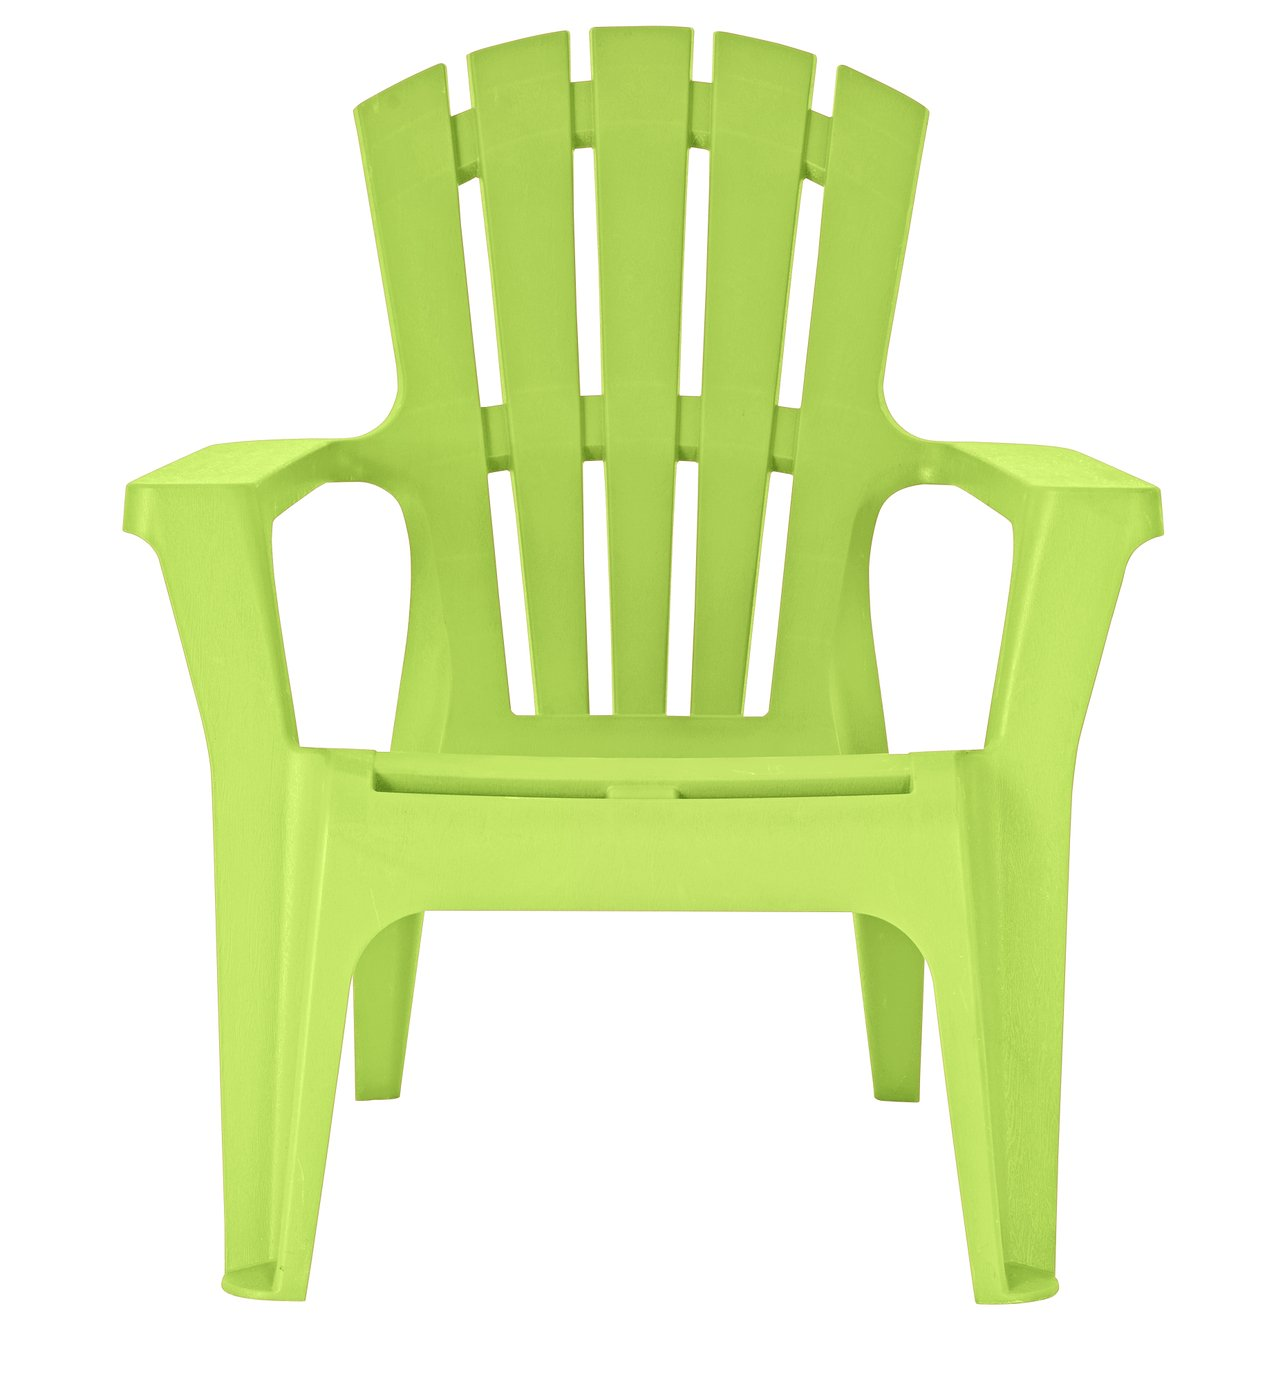 Image of Bicadesign Maryland Chair - Green